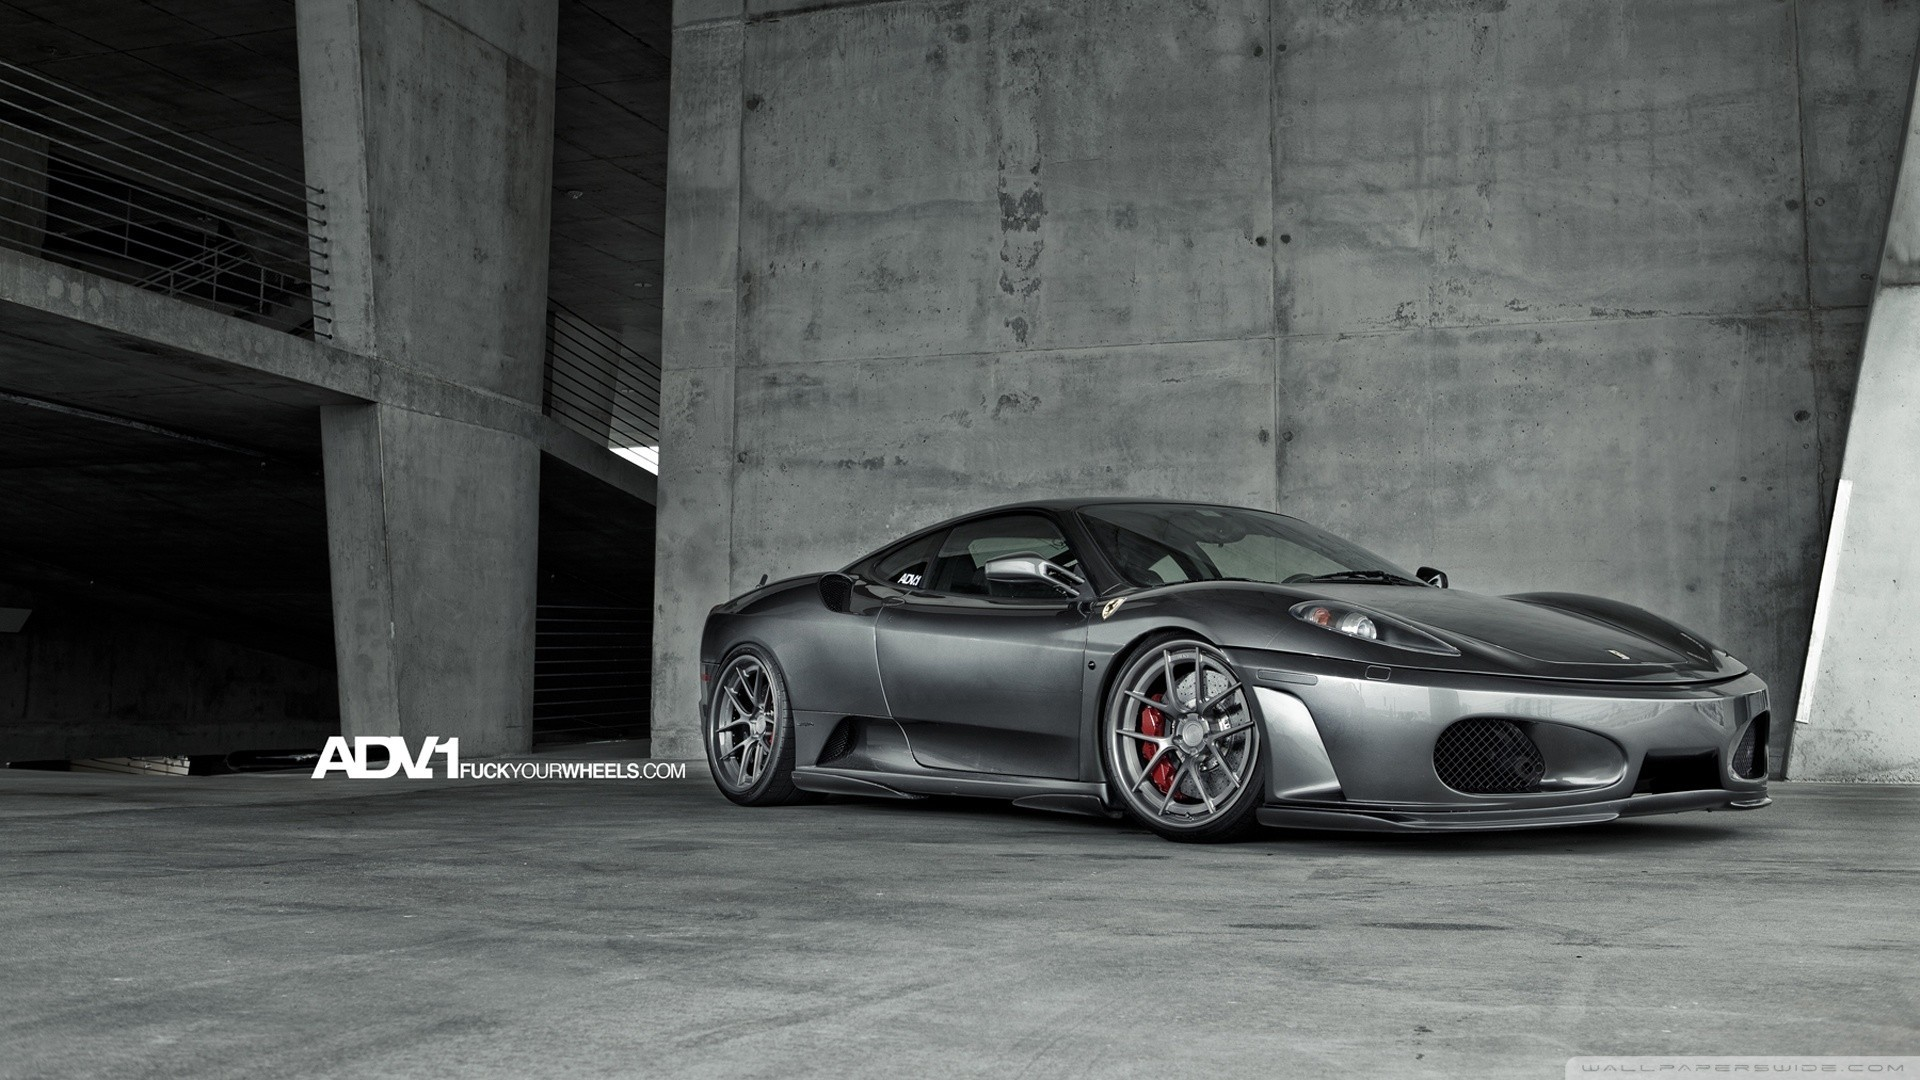 cars Ferrari ferrari f430 HD Wallpaper